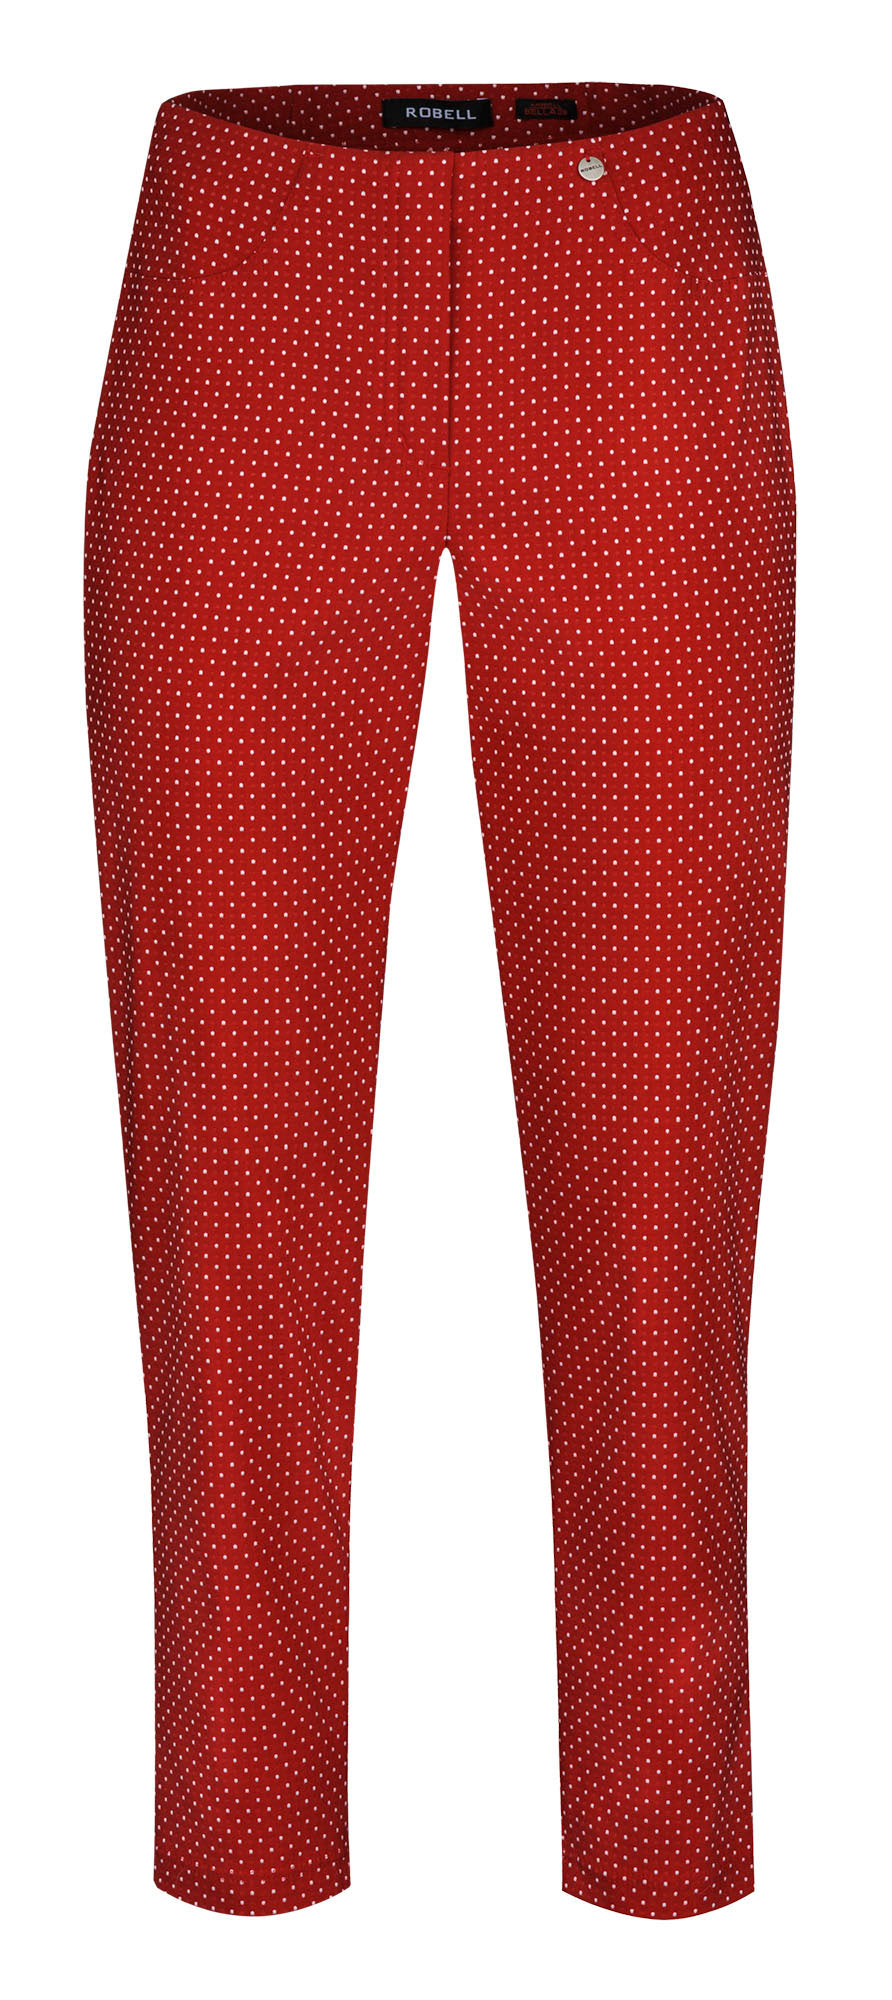 Robell Bella 09 Red Spot Ankle Trouser | The LBD Boutique & Trouser Shop